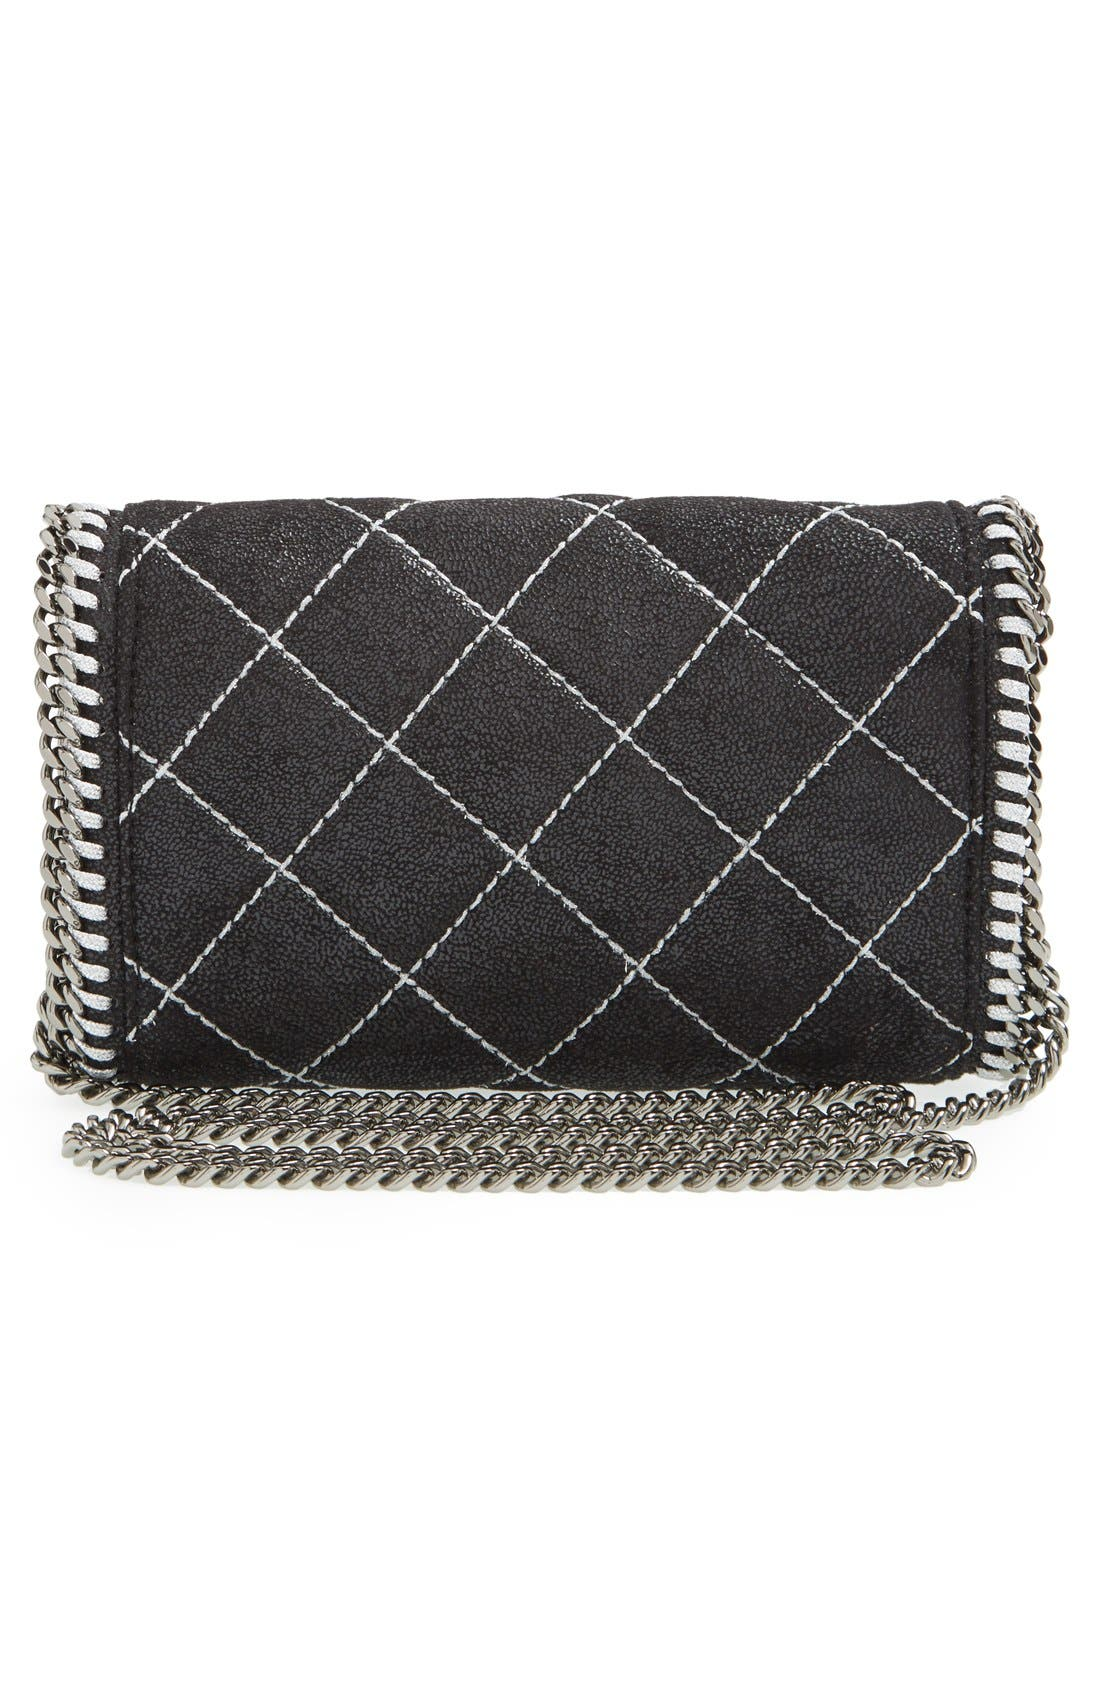 'Falabella' Quilted Faux Leather Crossbody Bag,                             Alternate thumbnail 10, color,